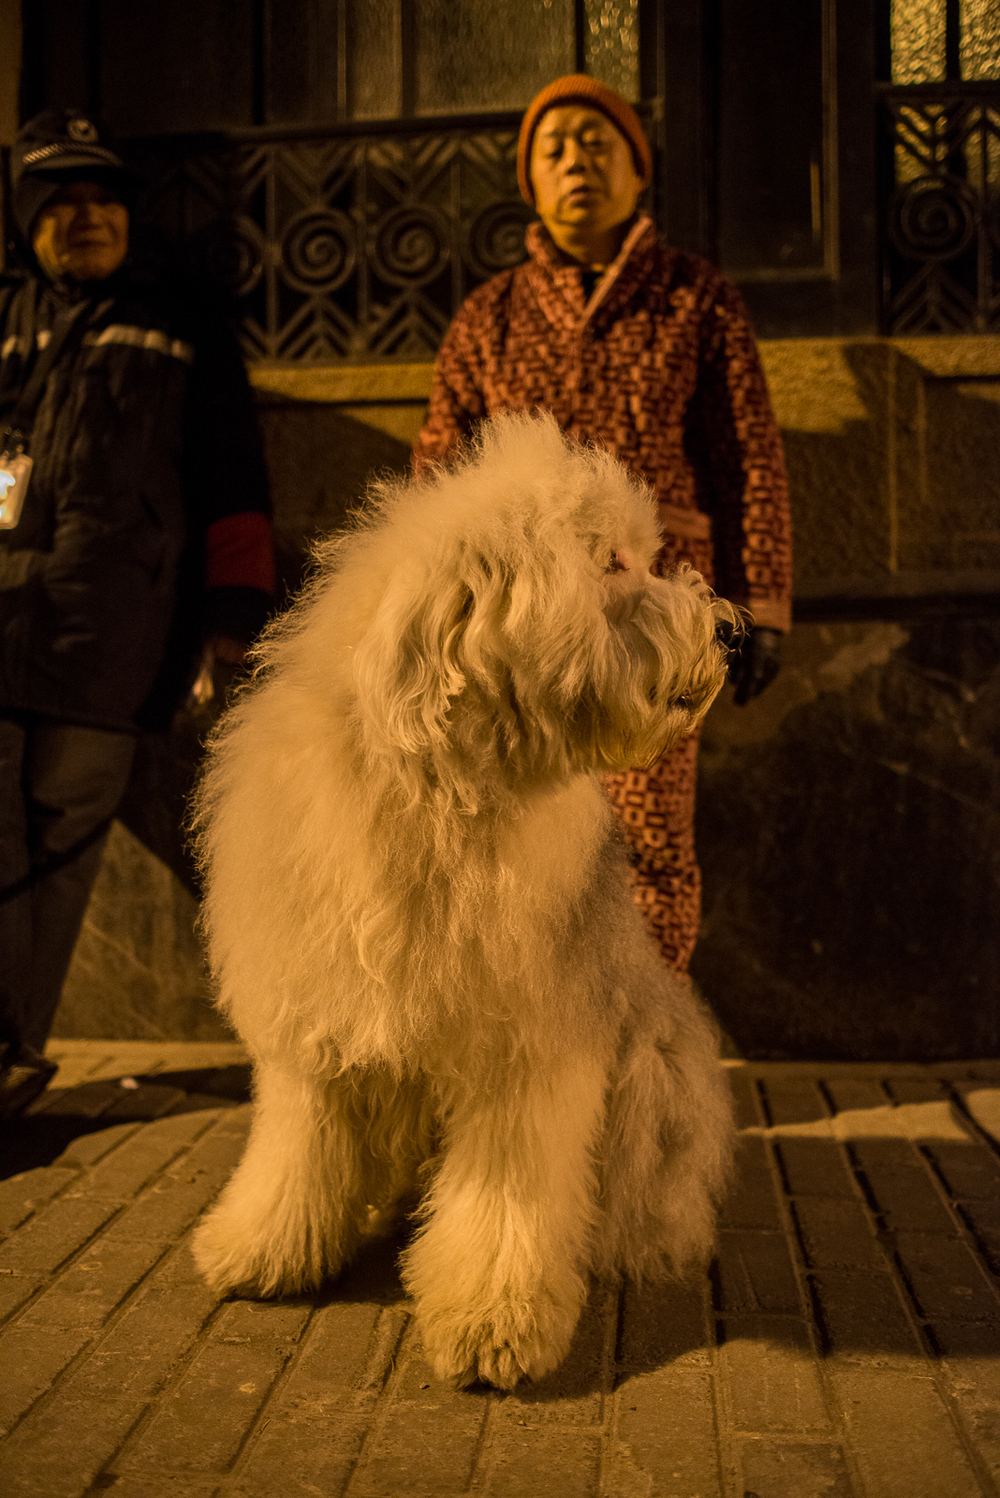 A night walk in Shanghai. This dog was about the same size as me.